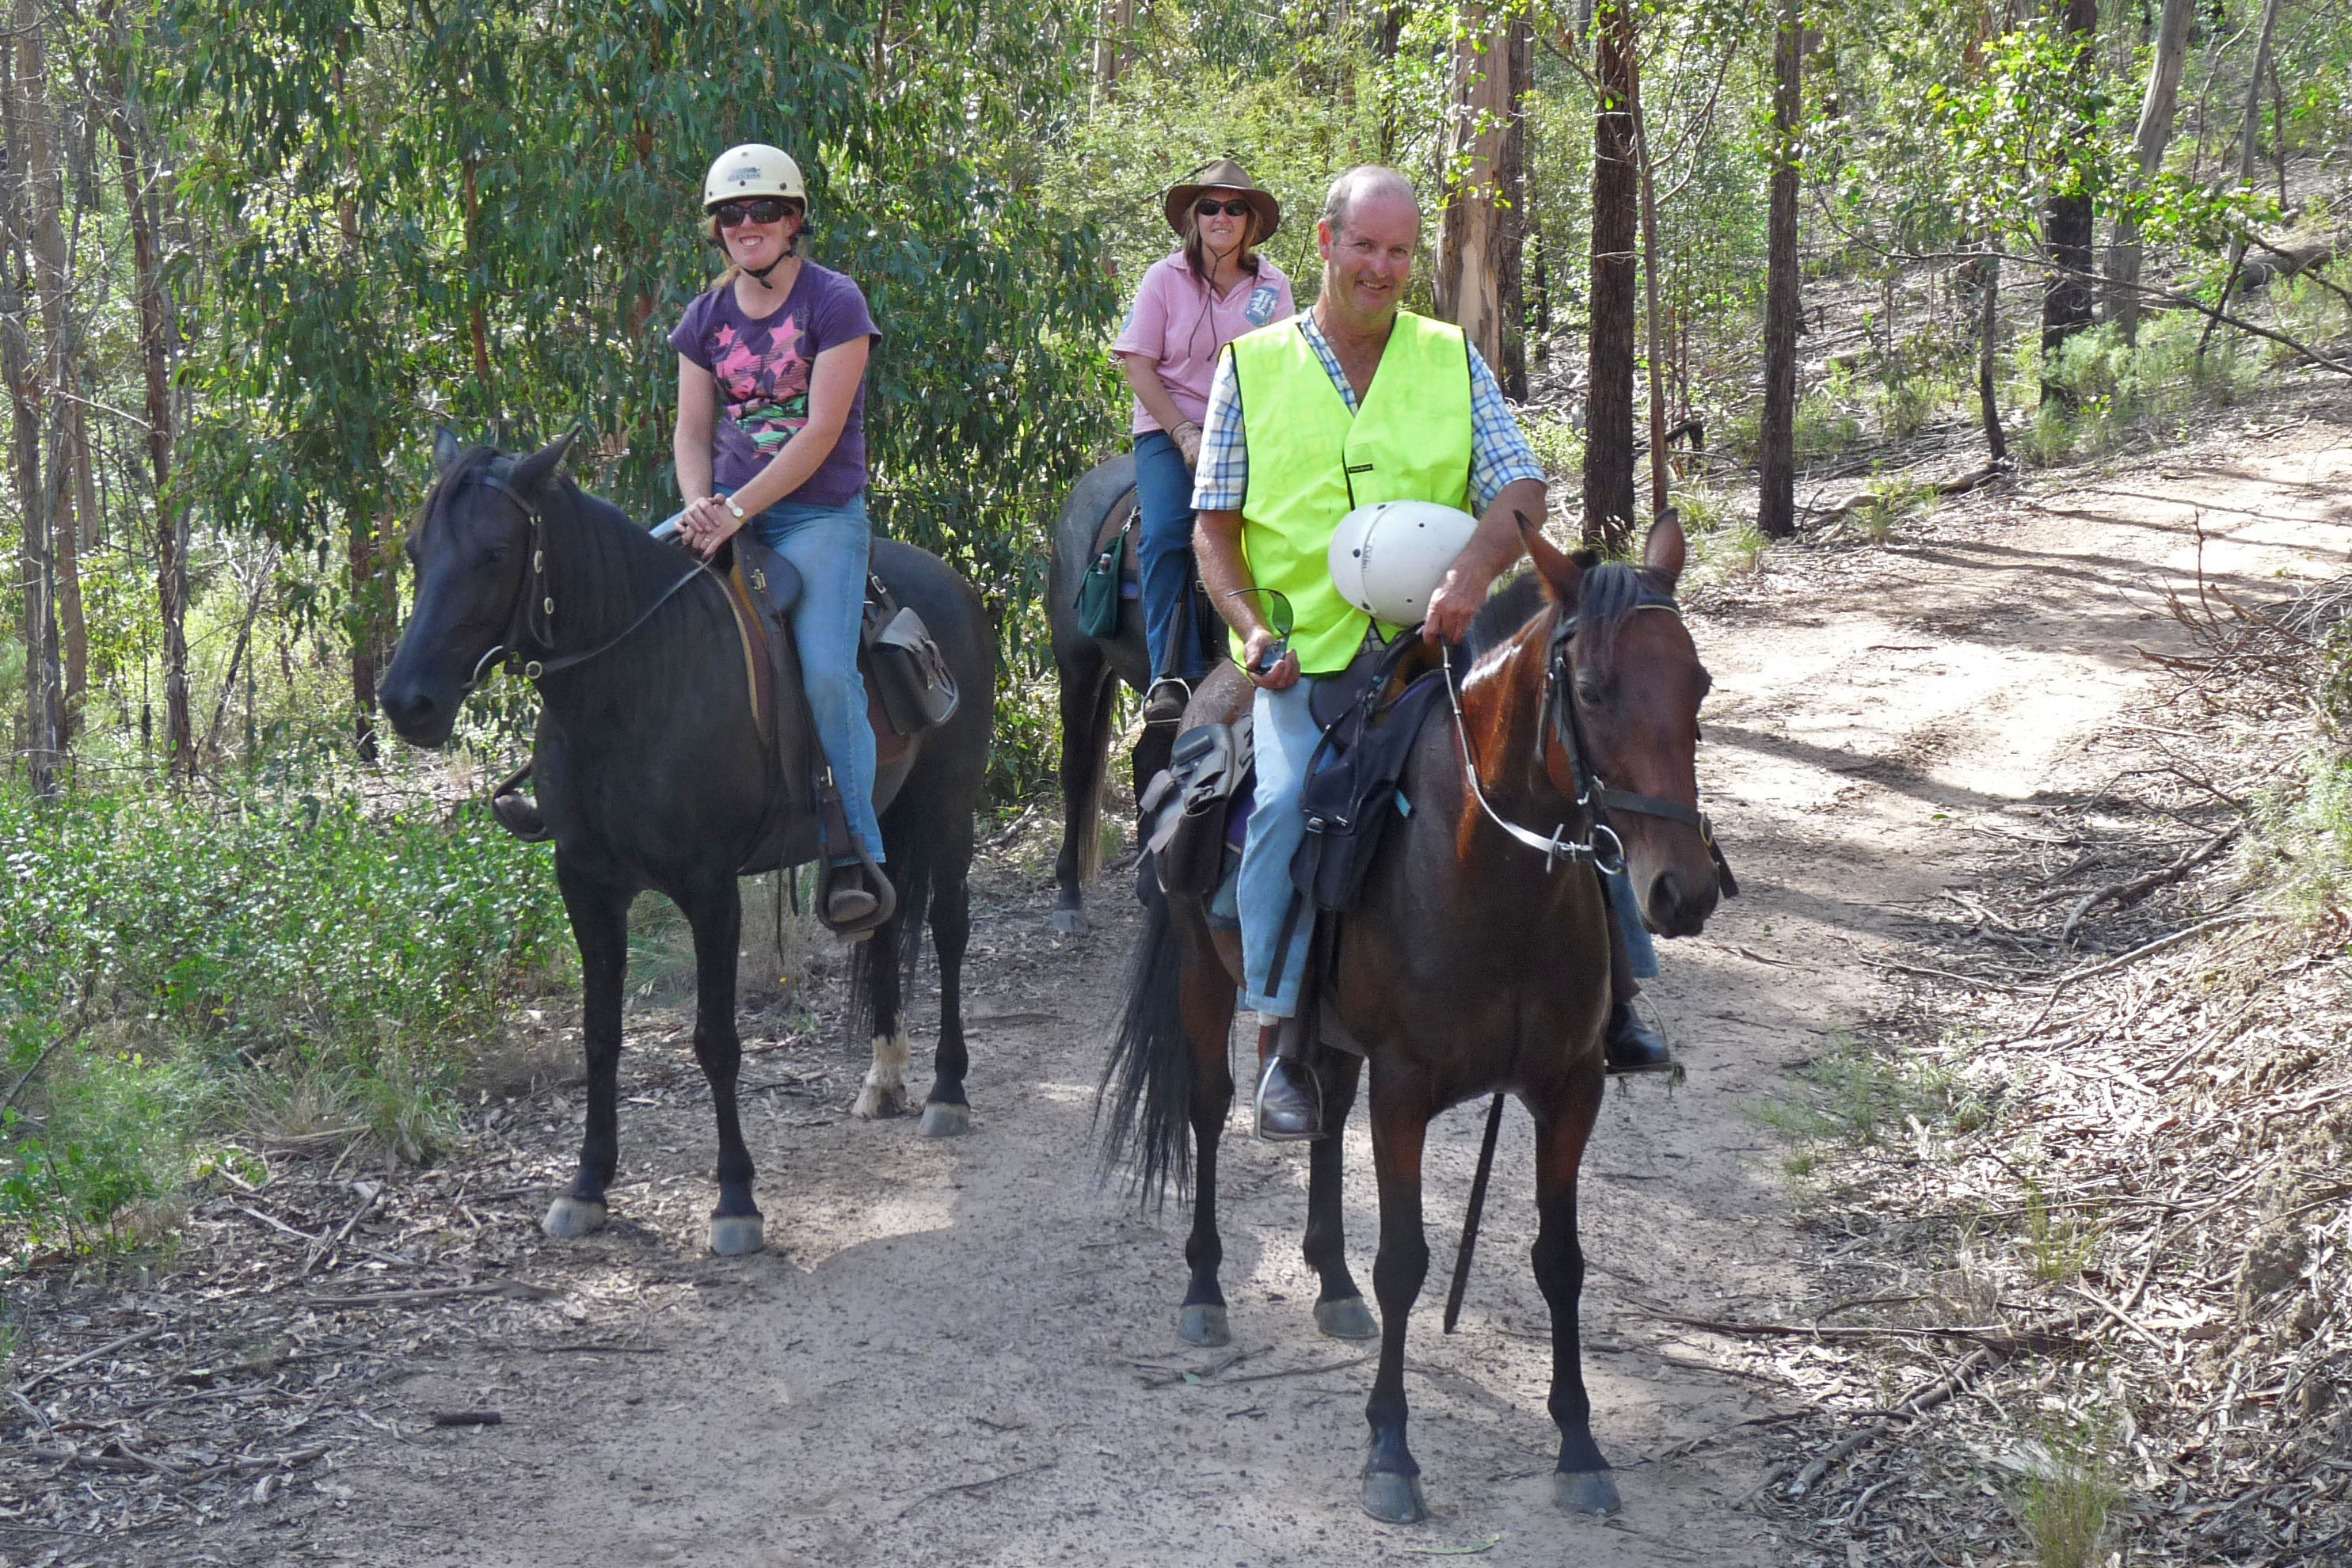 It was a hot day for the Twilight ride. Riders enjoyed a barbecue dinner on their return to the floats. Some members hadcamped overnight, great place to camp. Lead rider Chris and Debbie Andrews